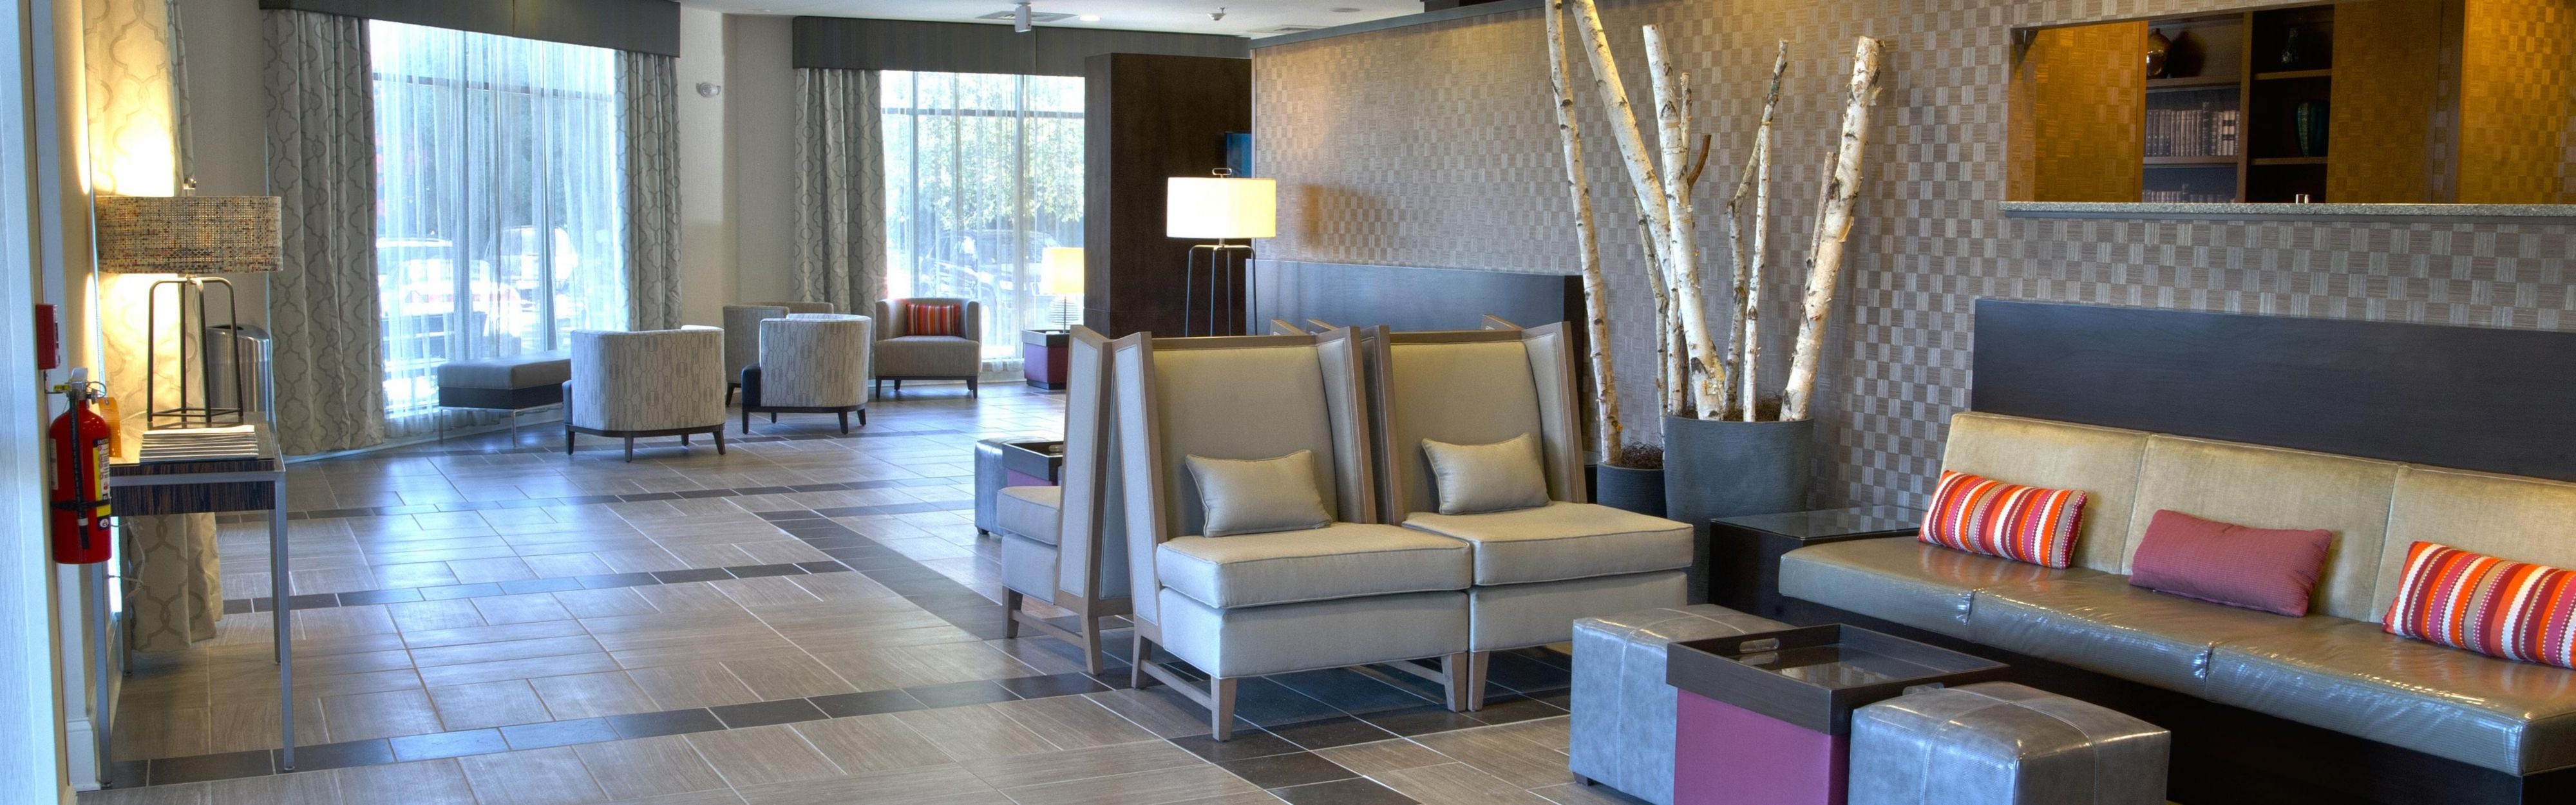 Holiday Inn Charlotte-Airport Conf Ctr image 0